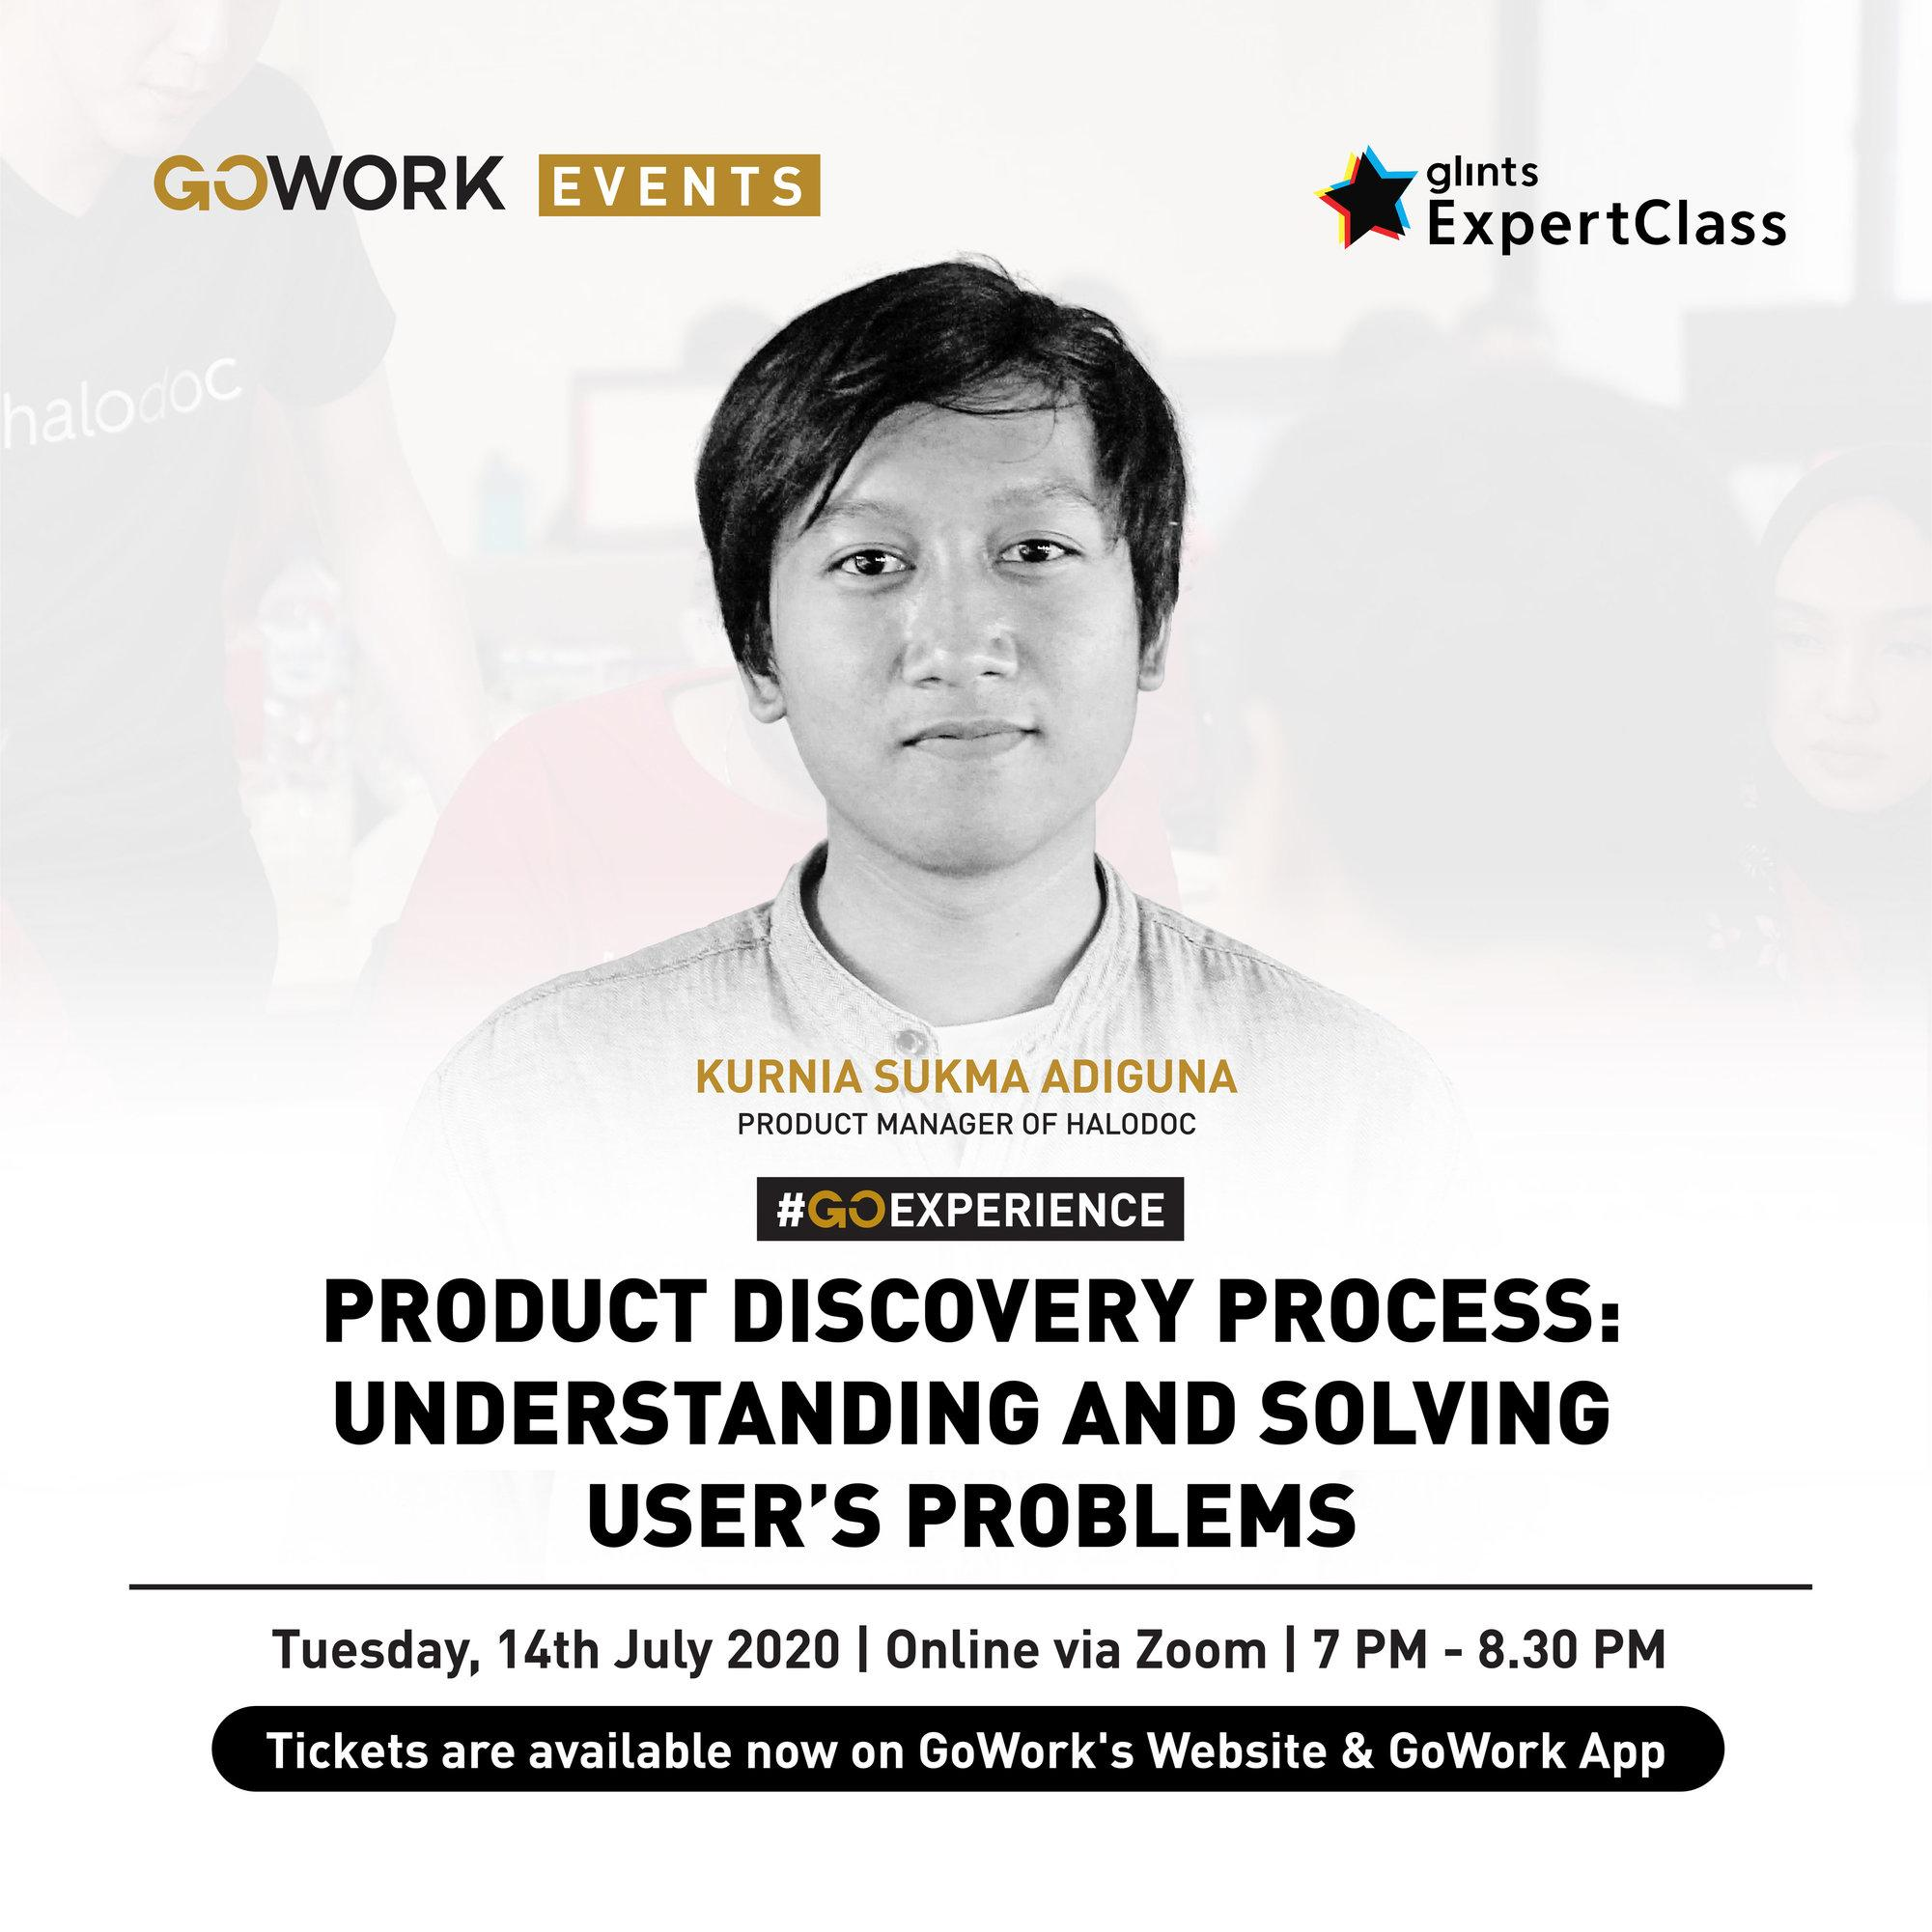 Product Discovery Process: Understanding and Solving User's Problems